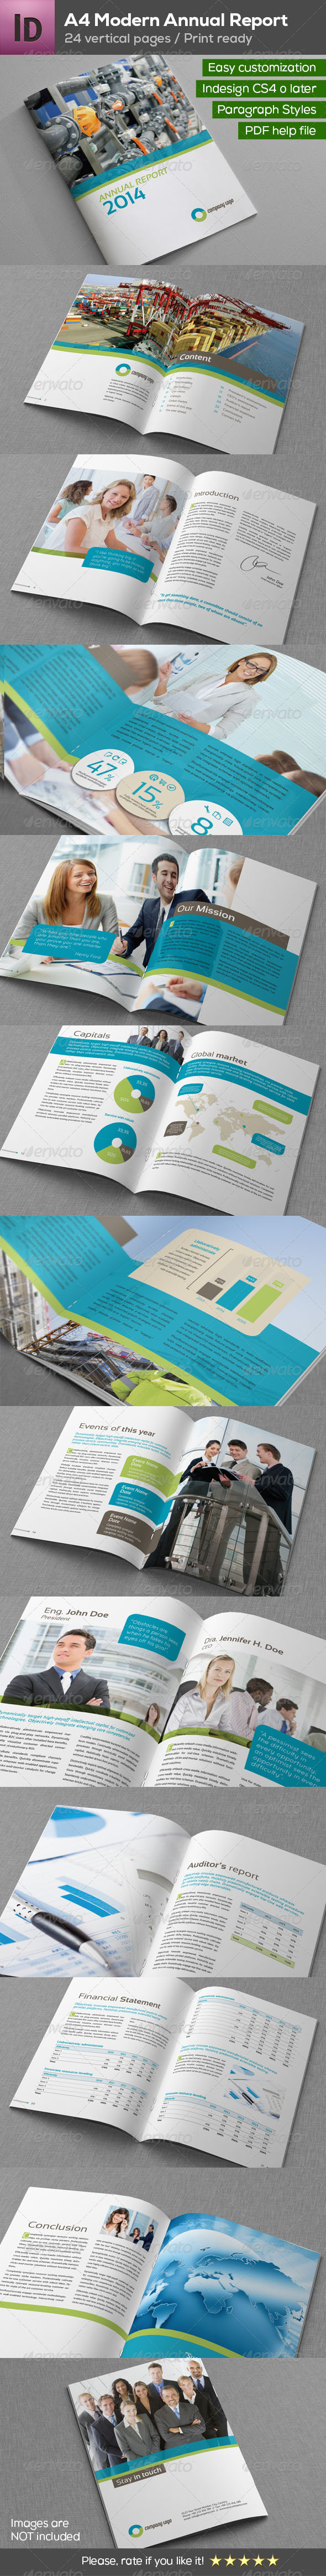 GraphicRiver A4 Annual Report Brochure 24 pages 8186978